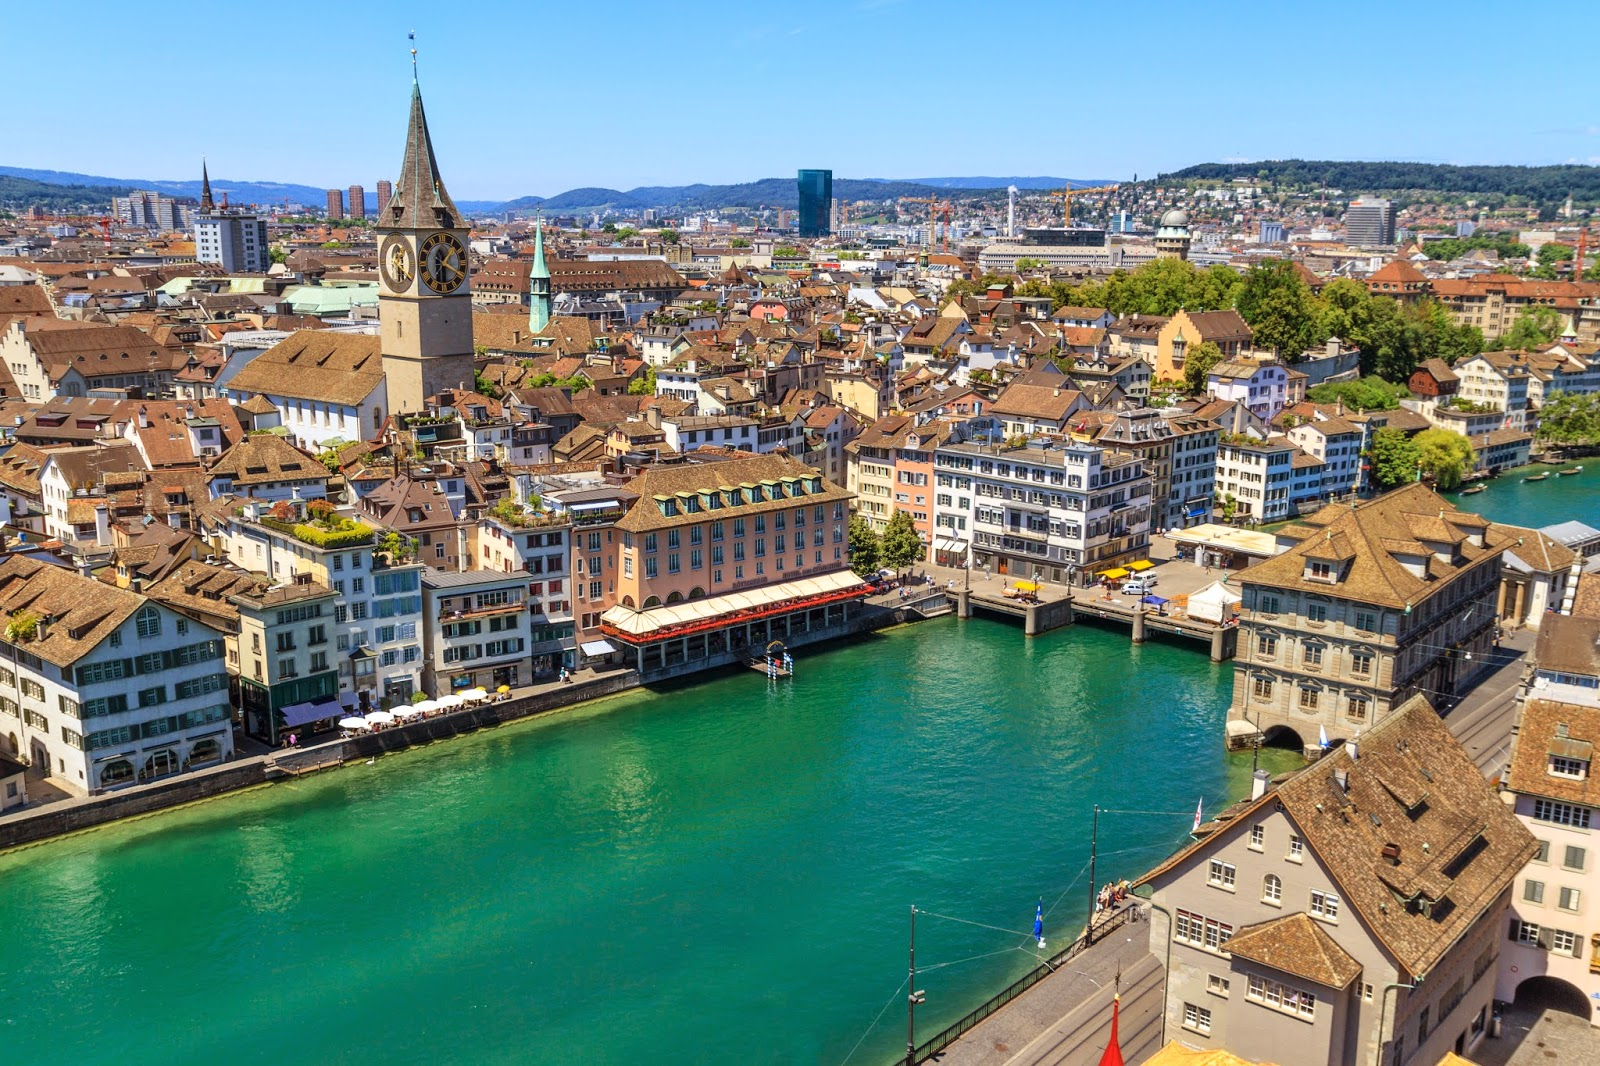 The most beautiful landmarks in Zurich